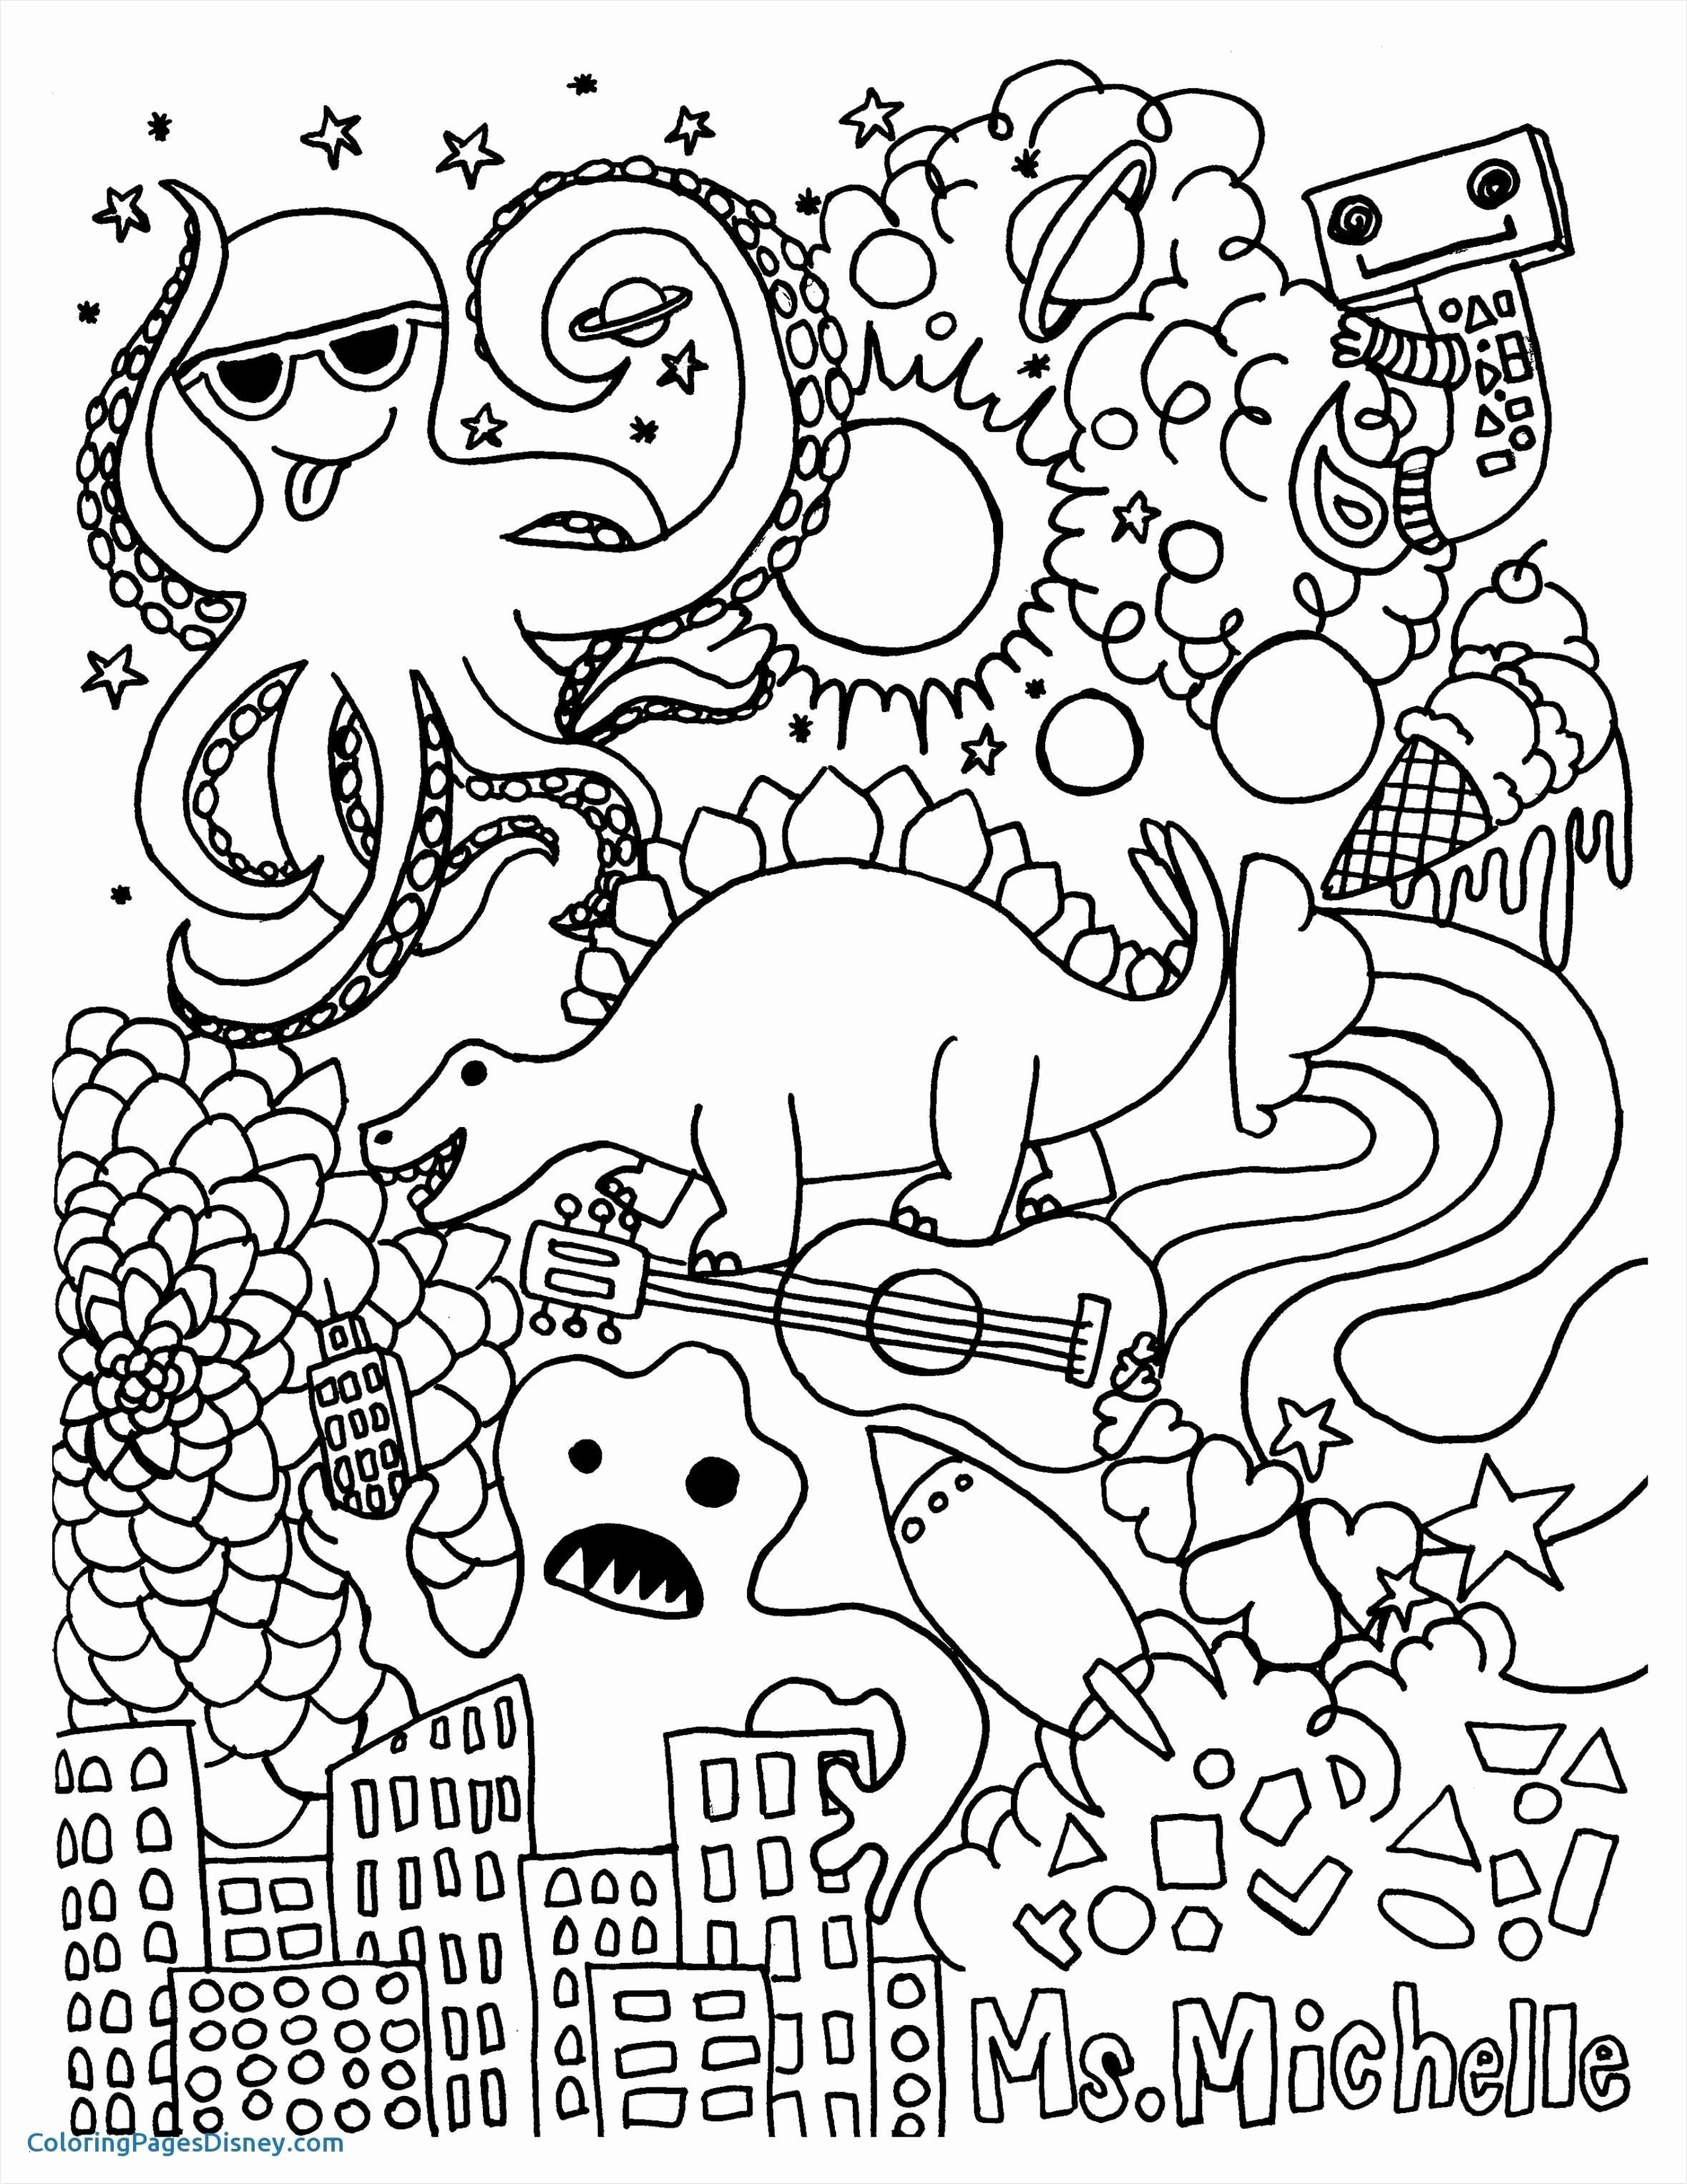 Free Hard Coloring Pages Lovely Hard Animal Coloring Pages Coloring Pages Inspirational Mandala Coloring Pages Disney Coloring Pages